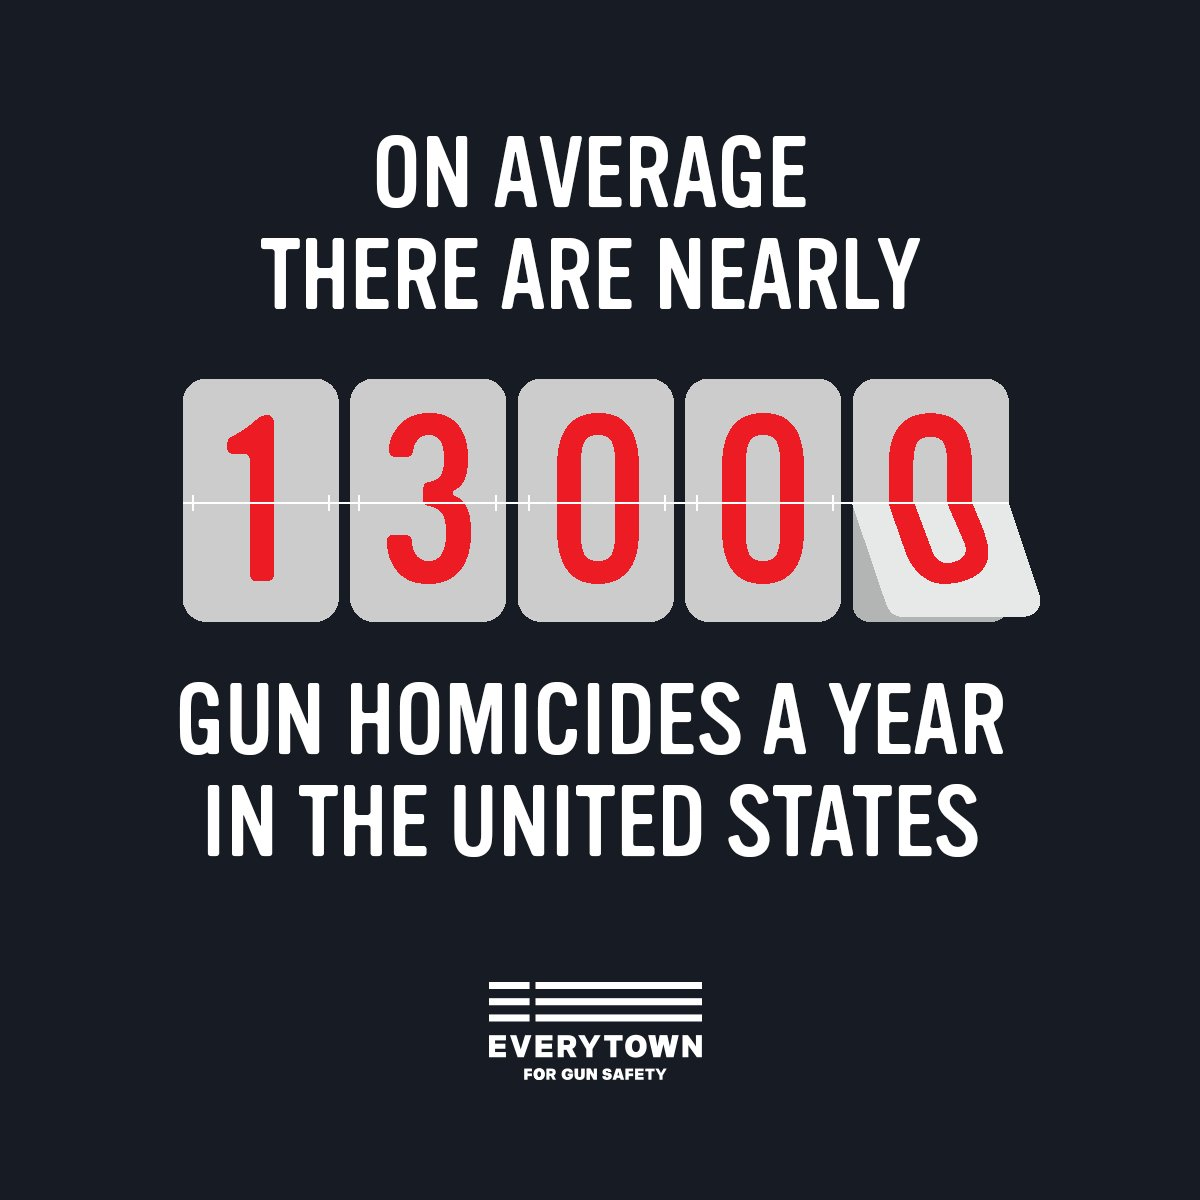 RT @Everytown: We don't have to live like this. Join the movement to #EndGunViolence: Text ACT to 644-33. https://t.co/tmVcRLrMNB